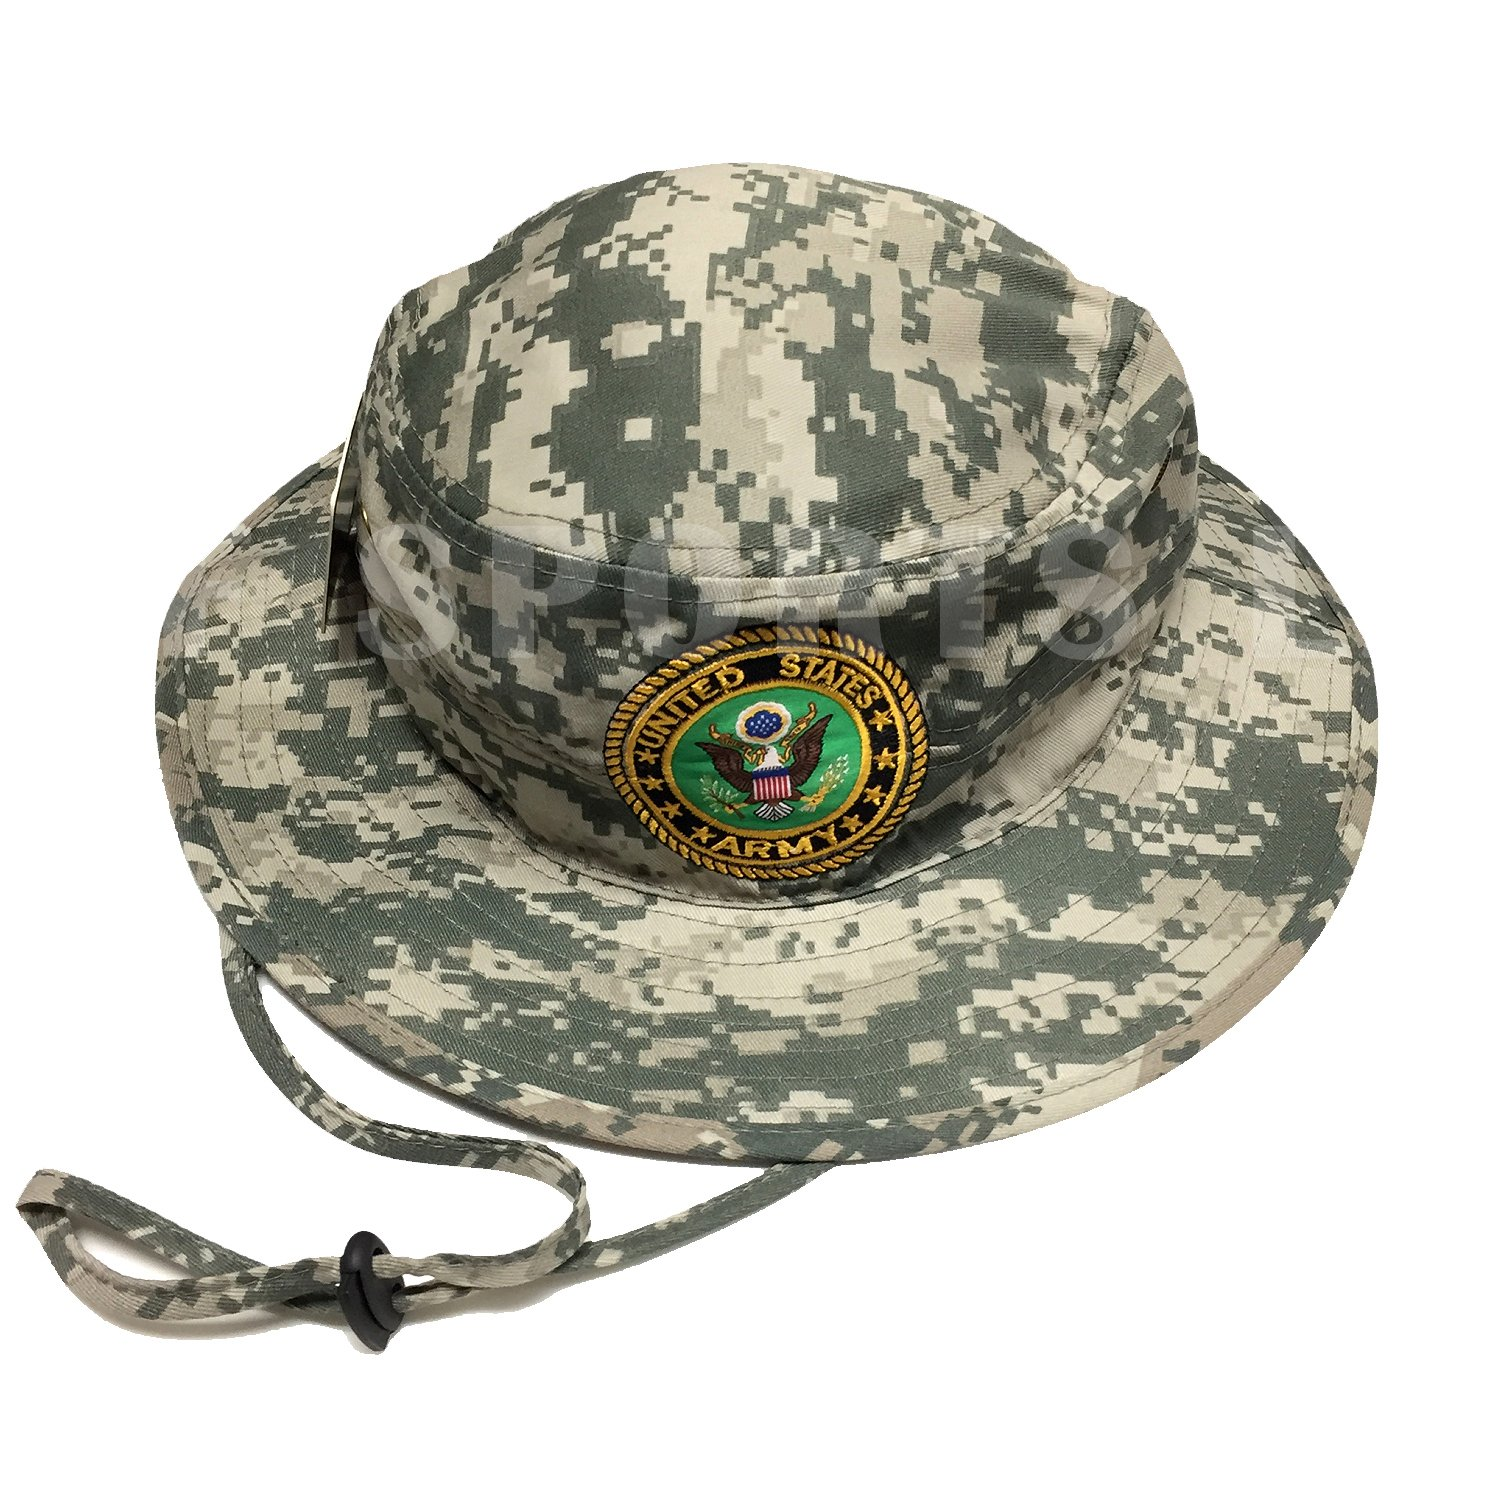 Army Gear U.S. Military U.S. Army Bucket Hat Digital Camo Desert Men s  Fishing Boonie Hiking Hunting Outdoor Cap Dad Hat Best Fathers day Gift 4d5840ff9a1